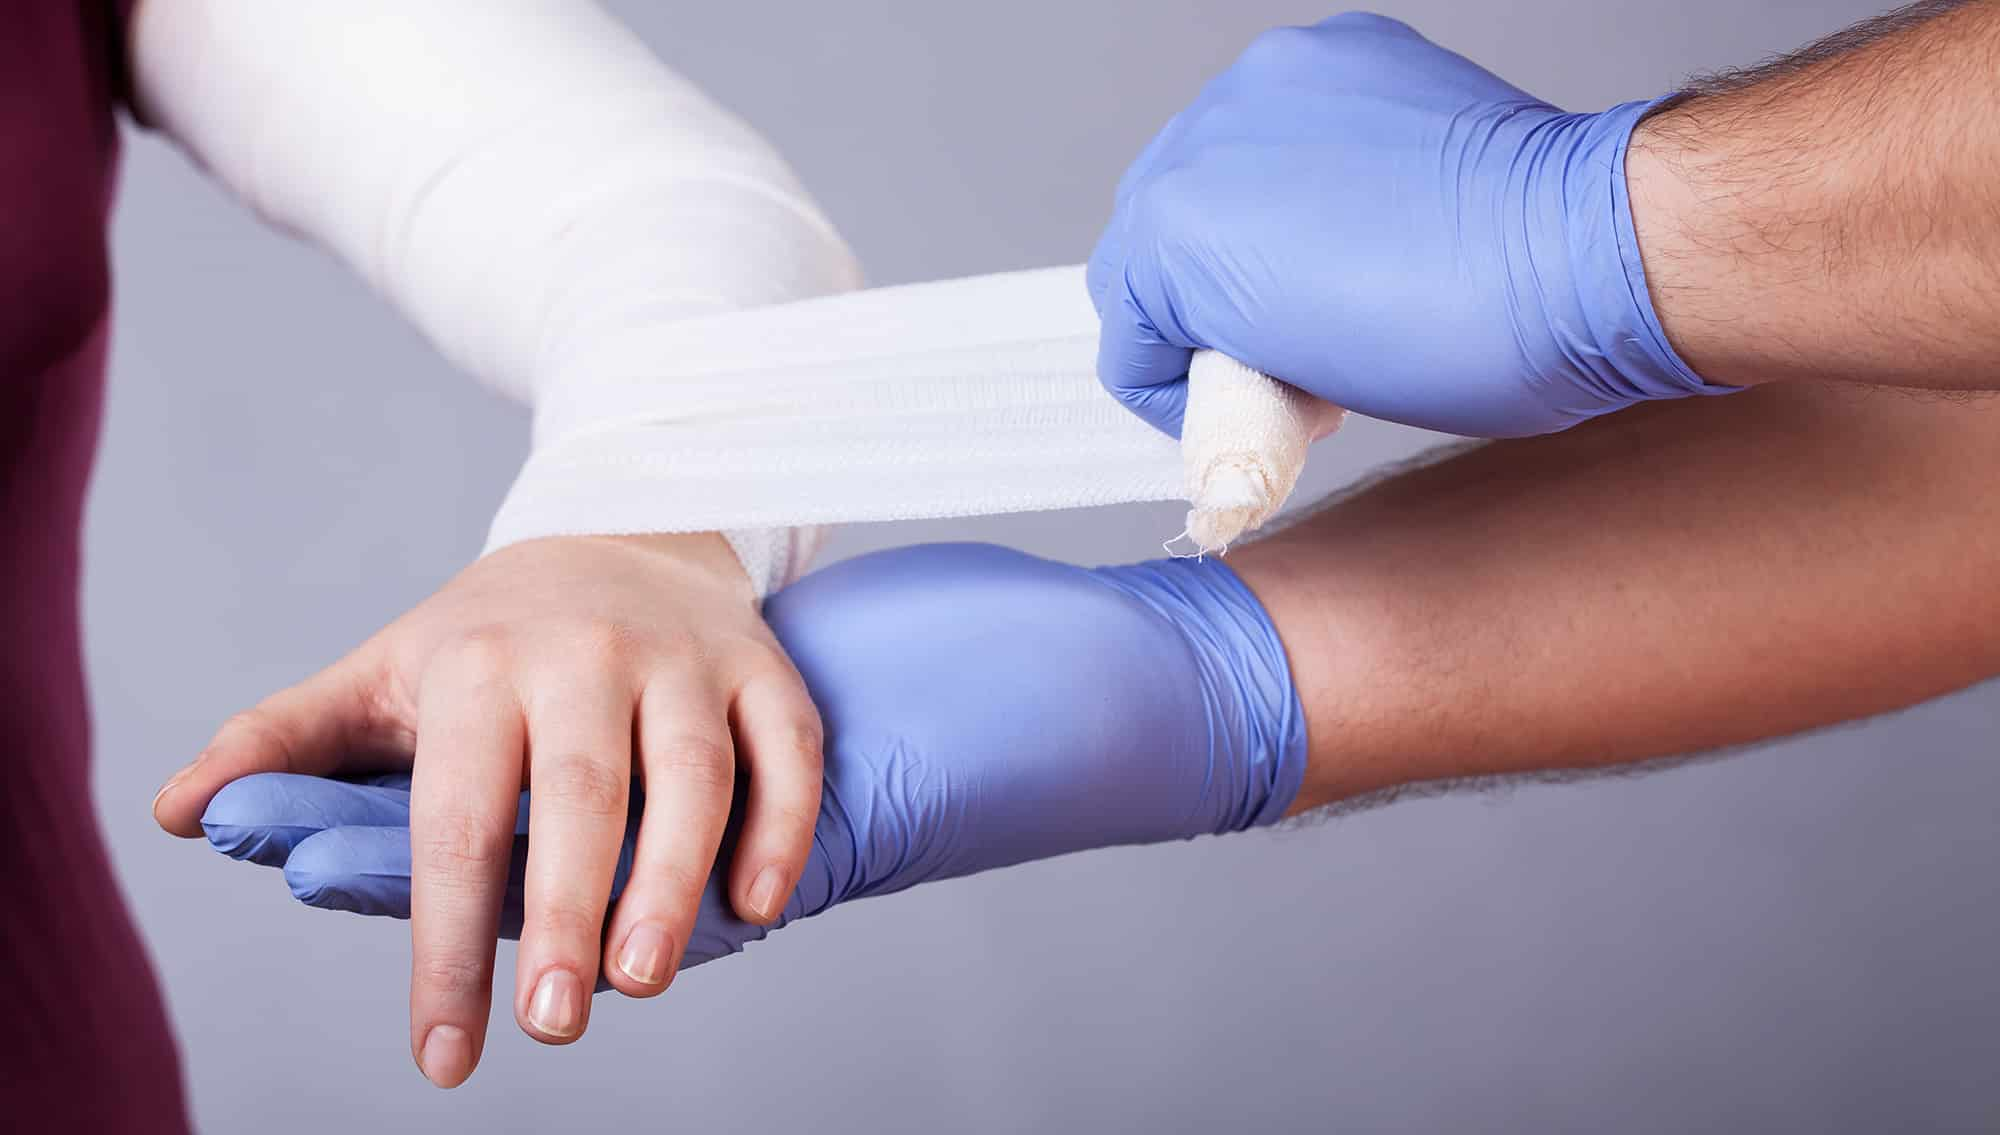 general practitioner wrapping an arm in bandages